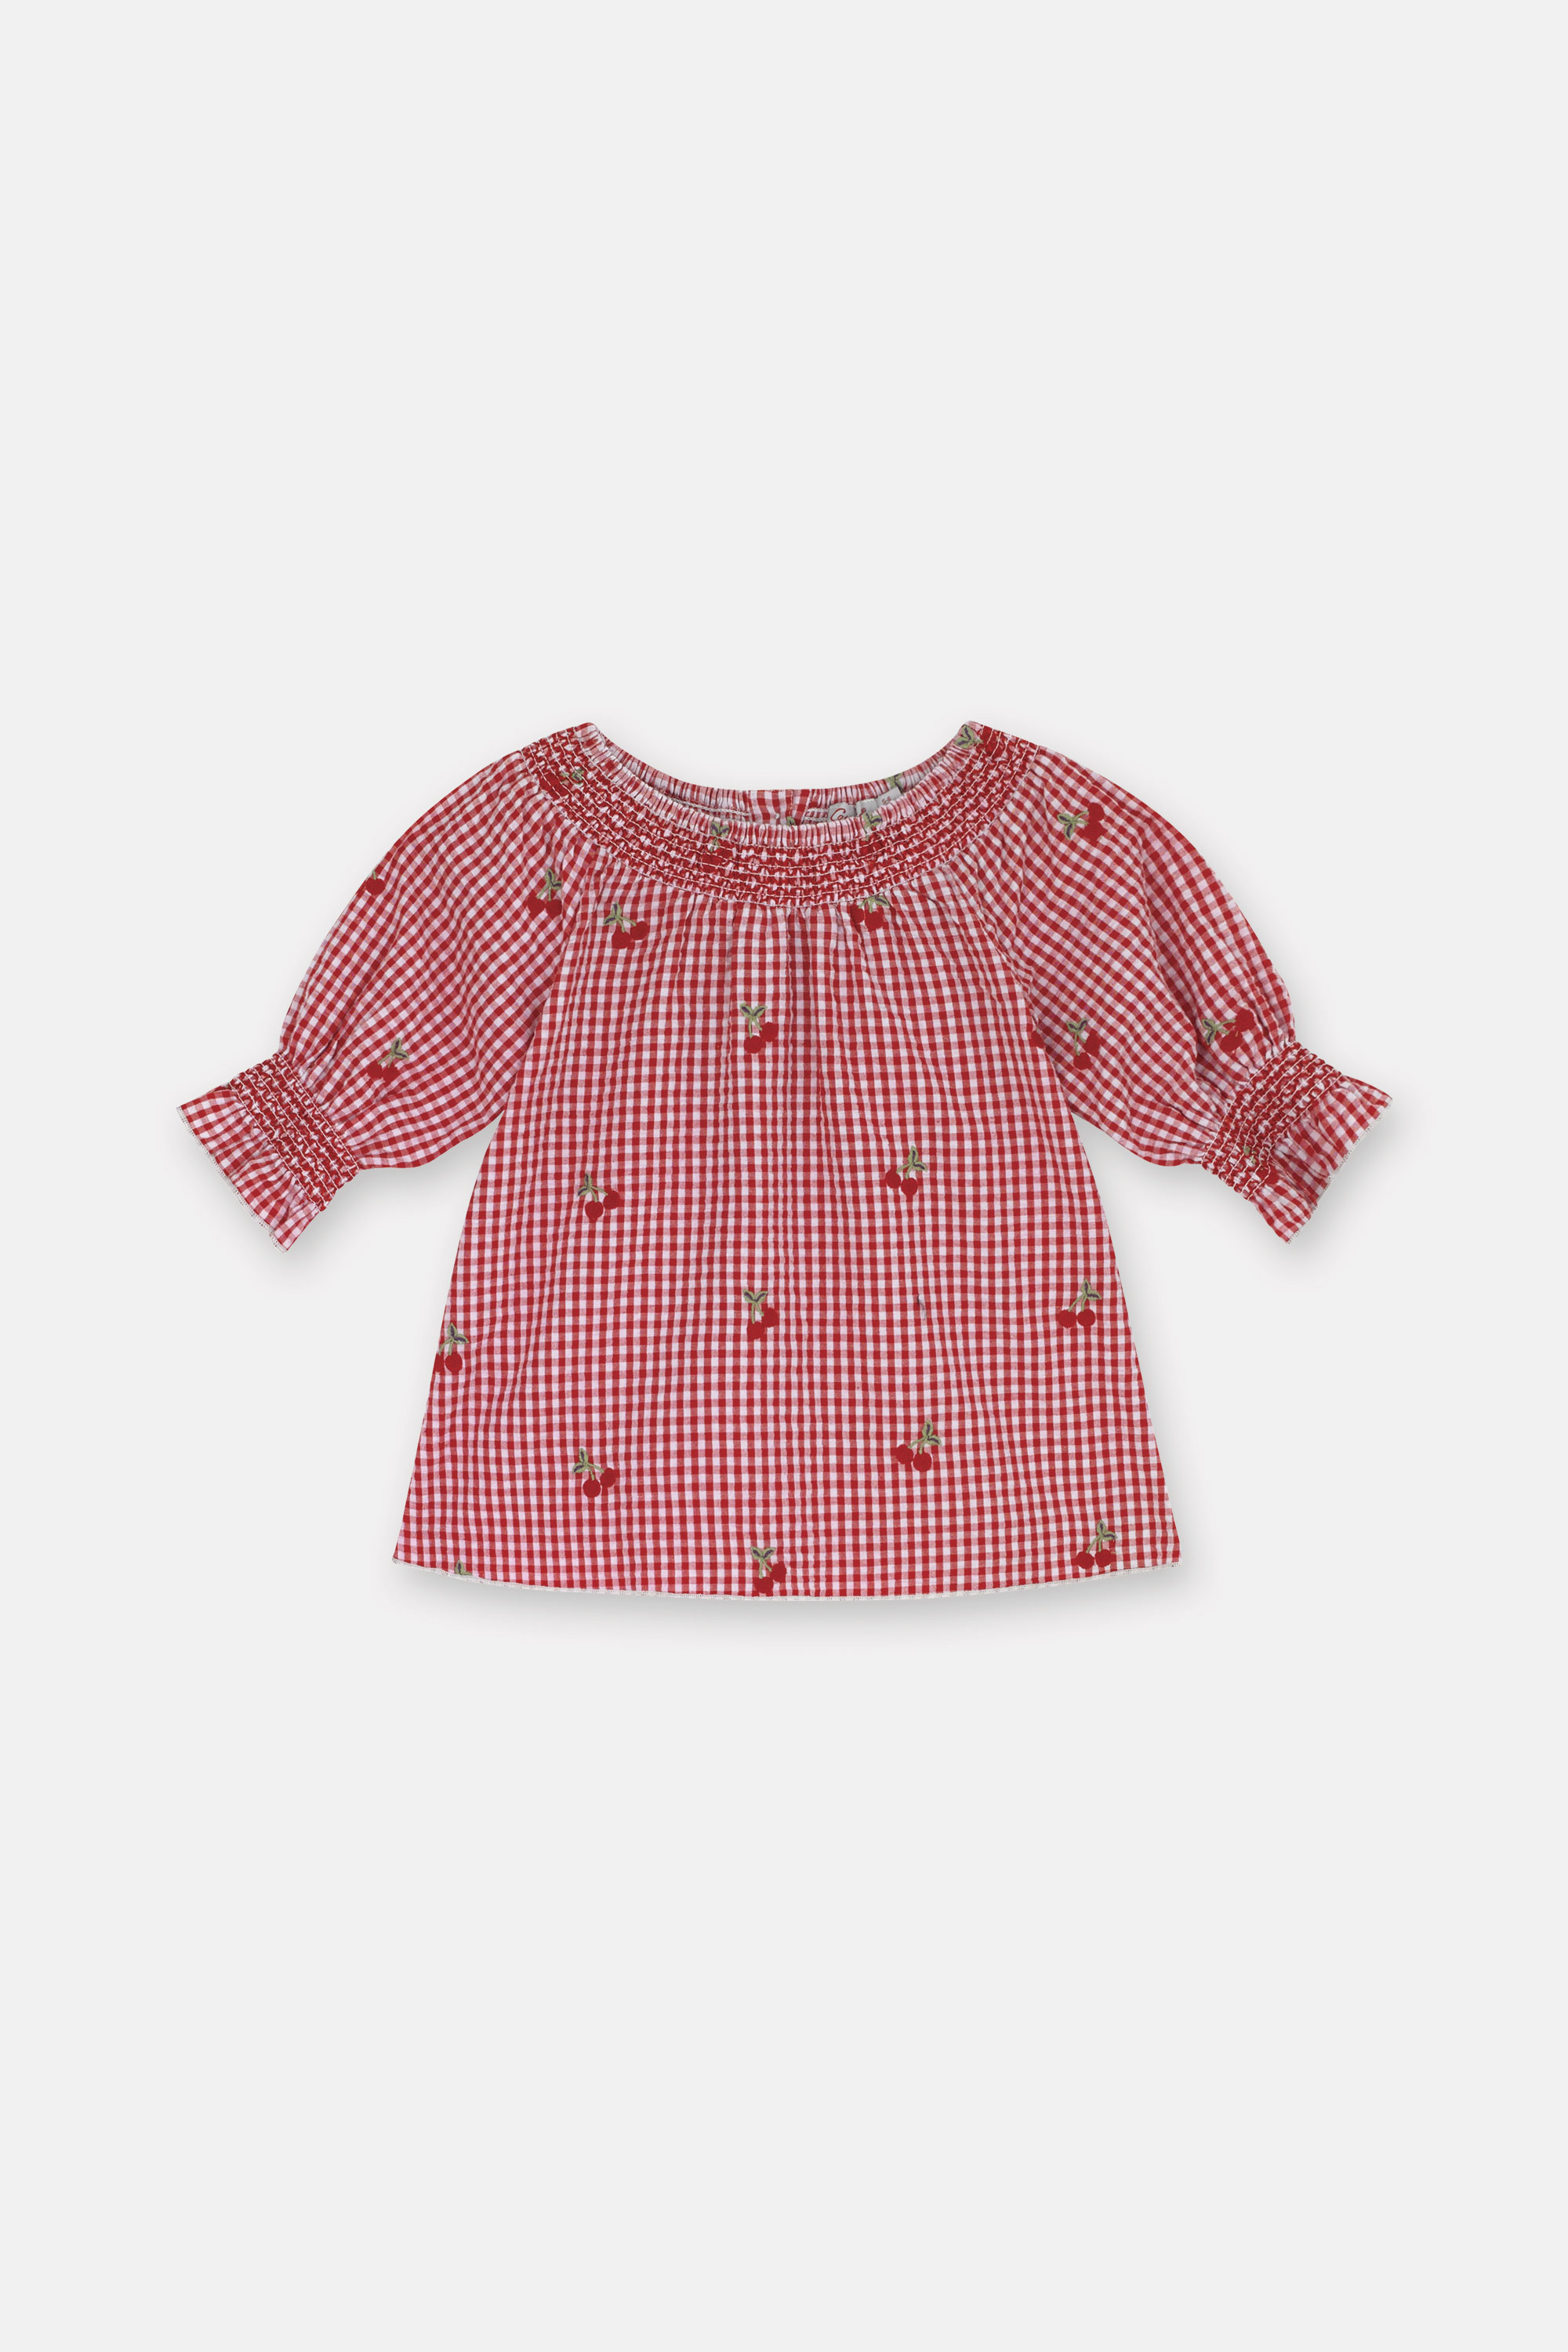 Cath Kidston Small Gingham Blouse in Warm Cream, 3-4 yr